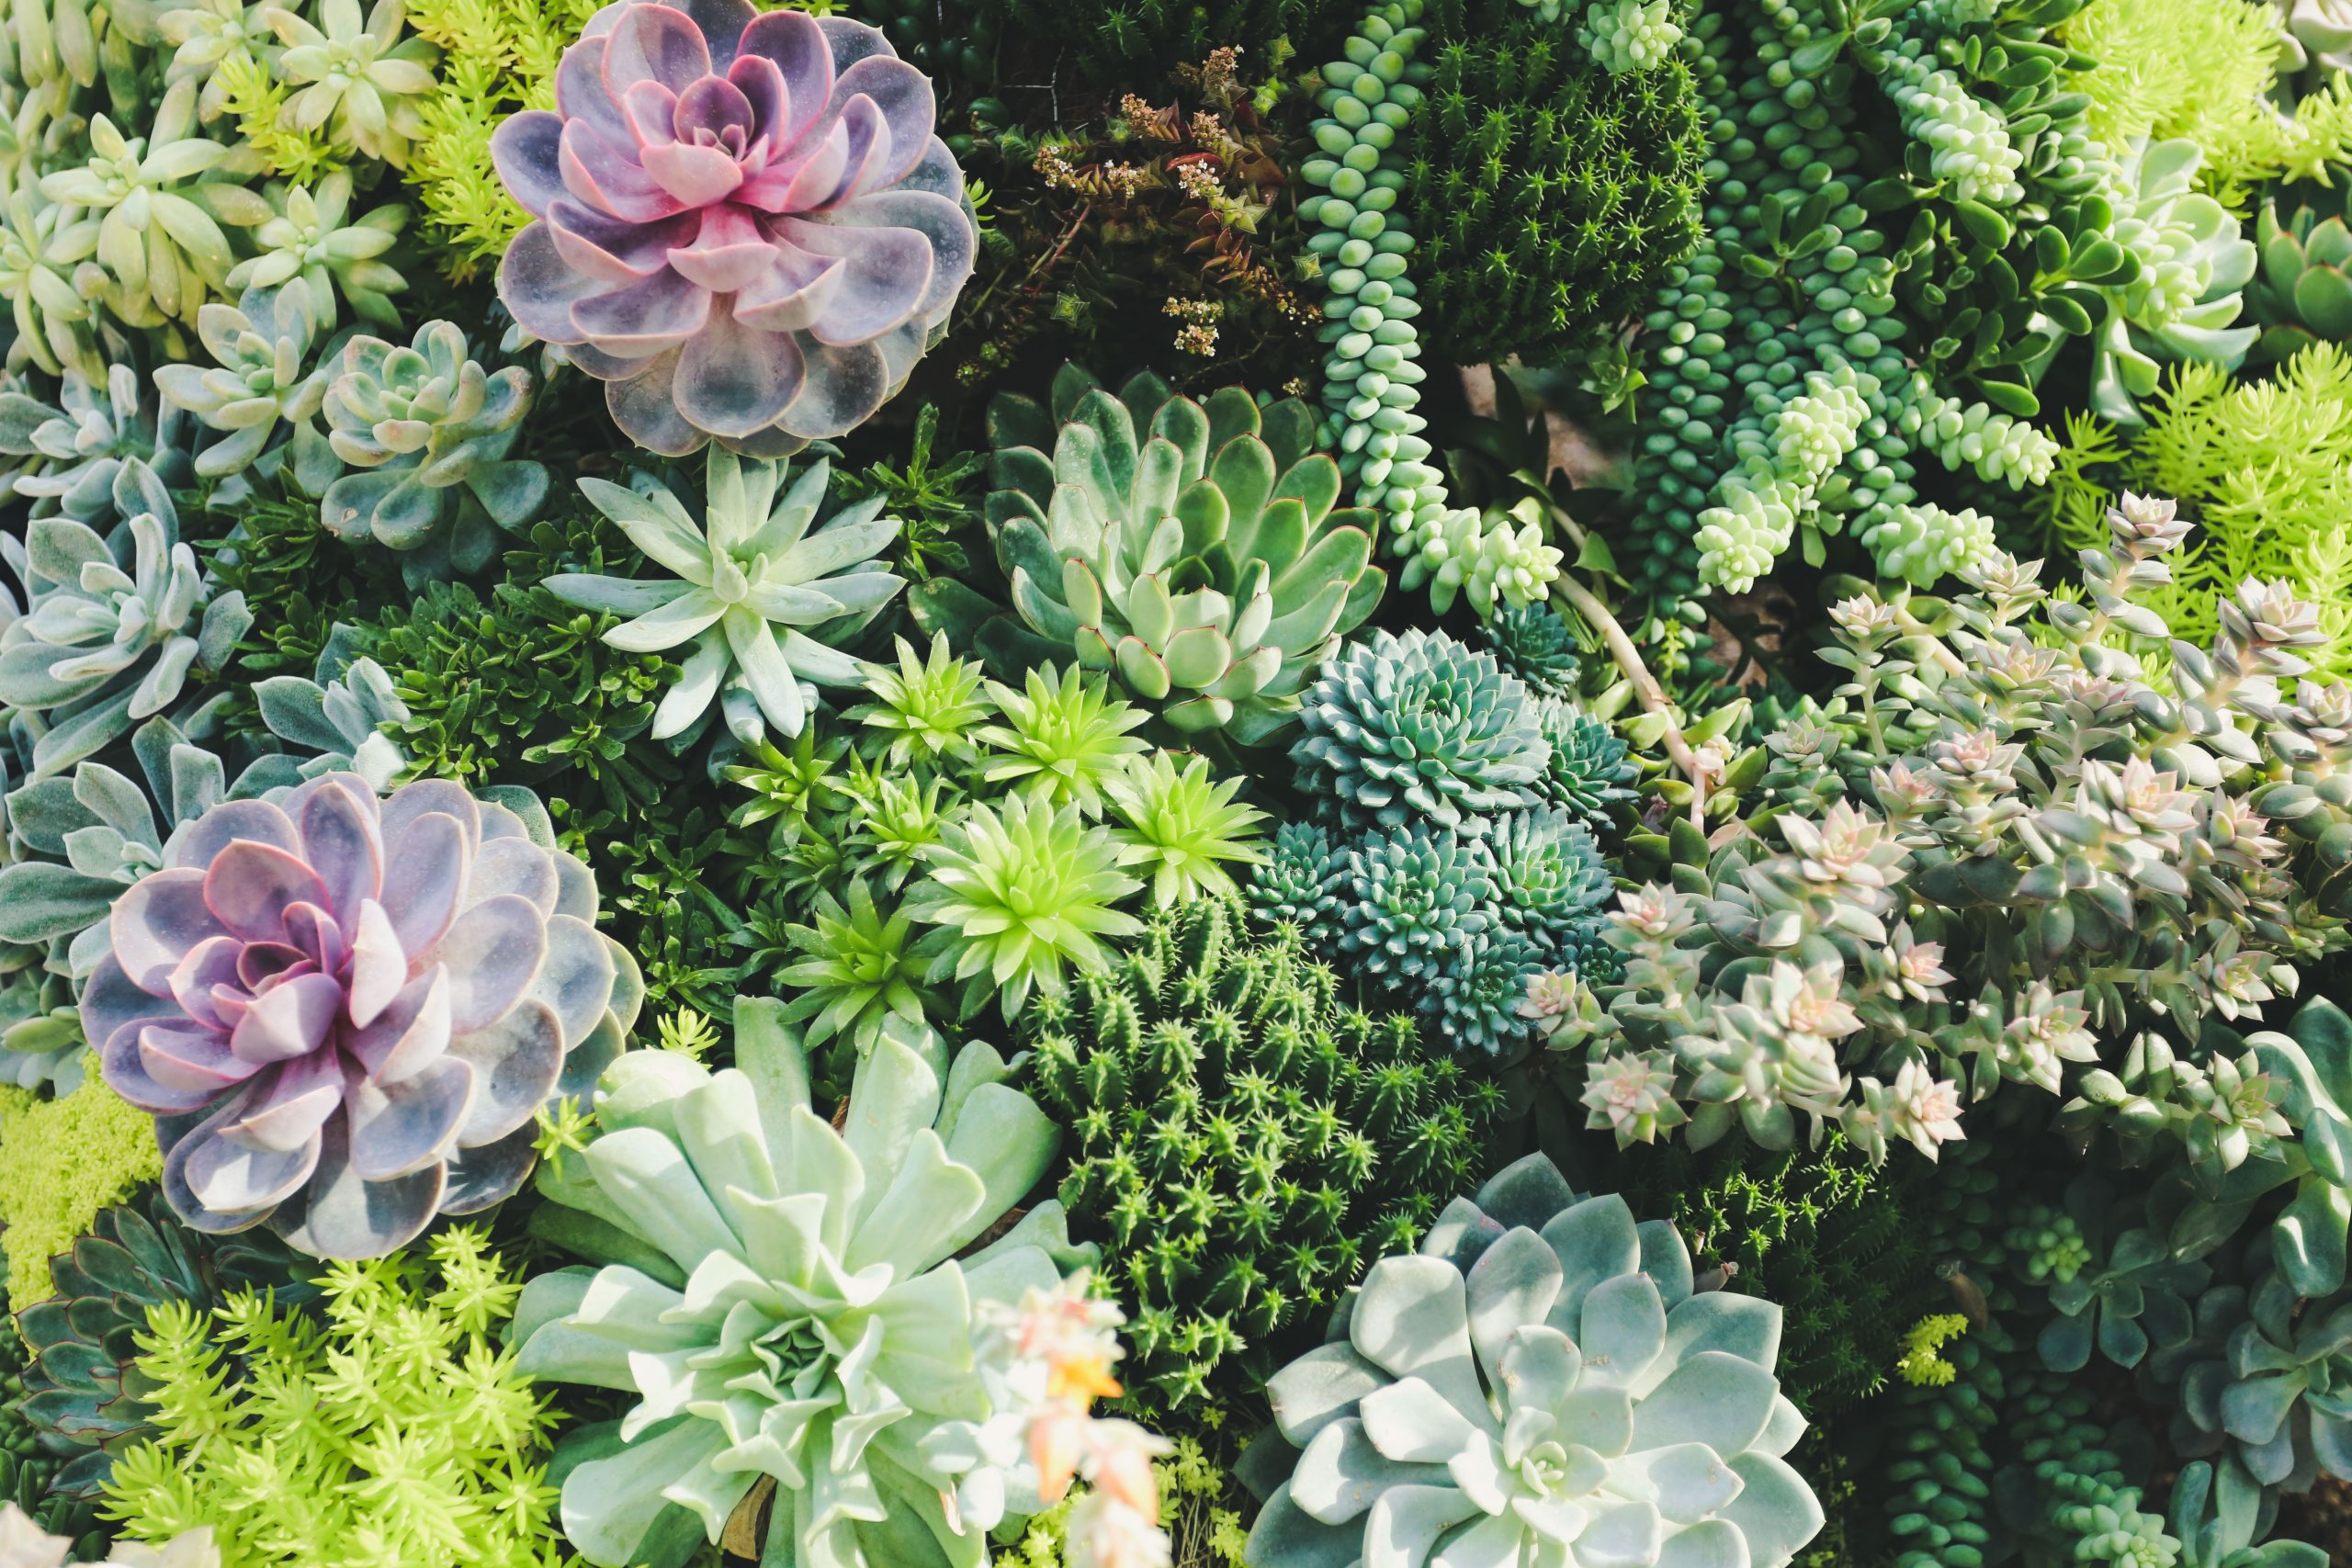 Image of succulents.